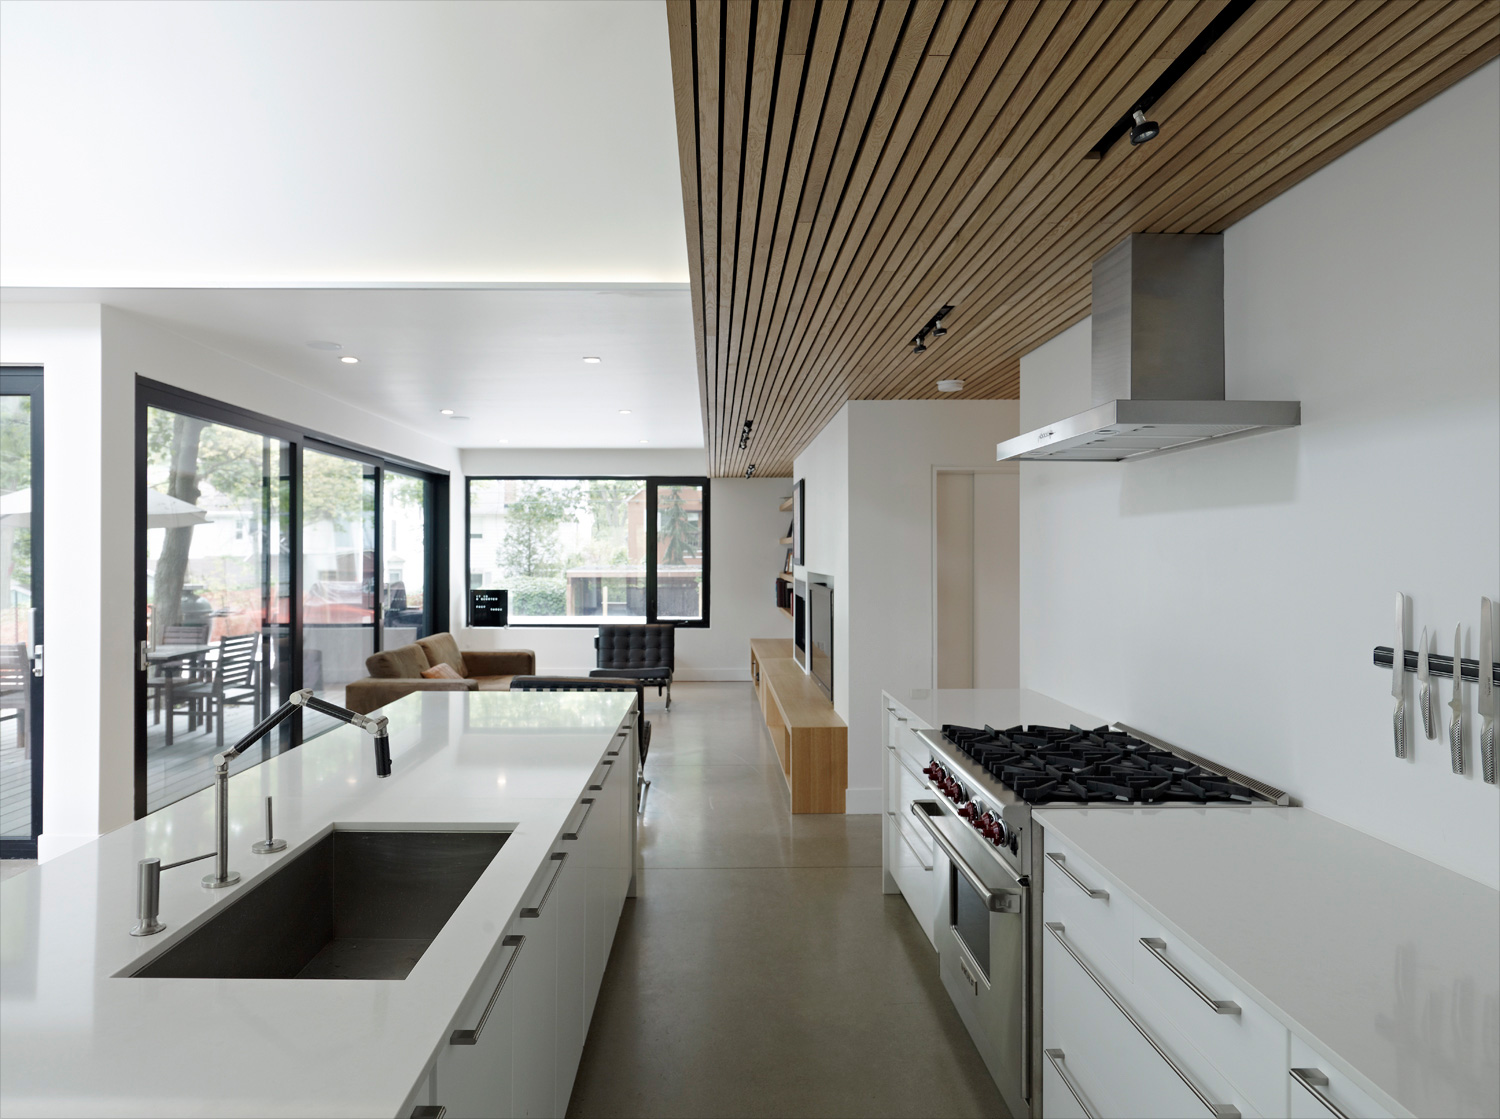 Contemporary Toronto kitchen with quartz countertops and gas range open to living room and dining room